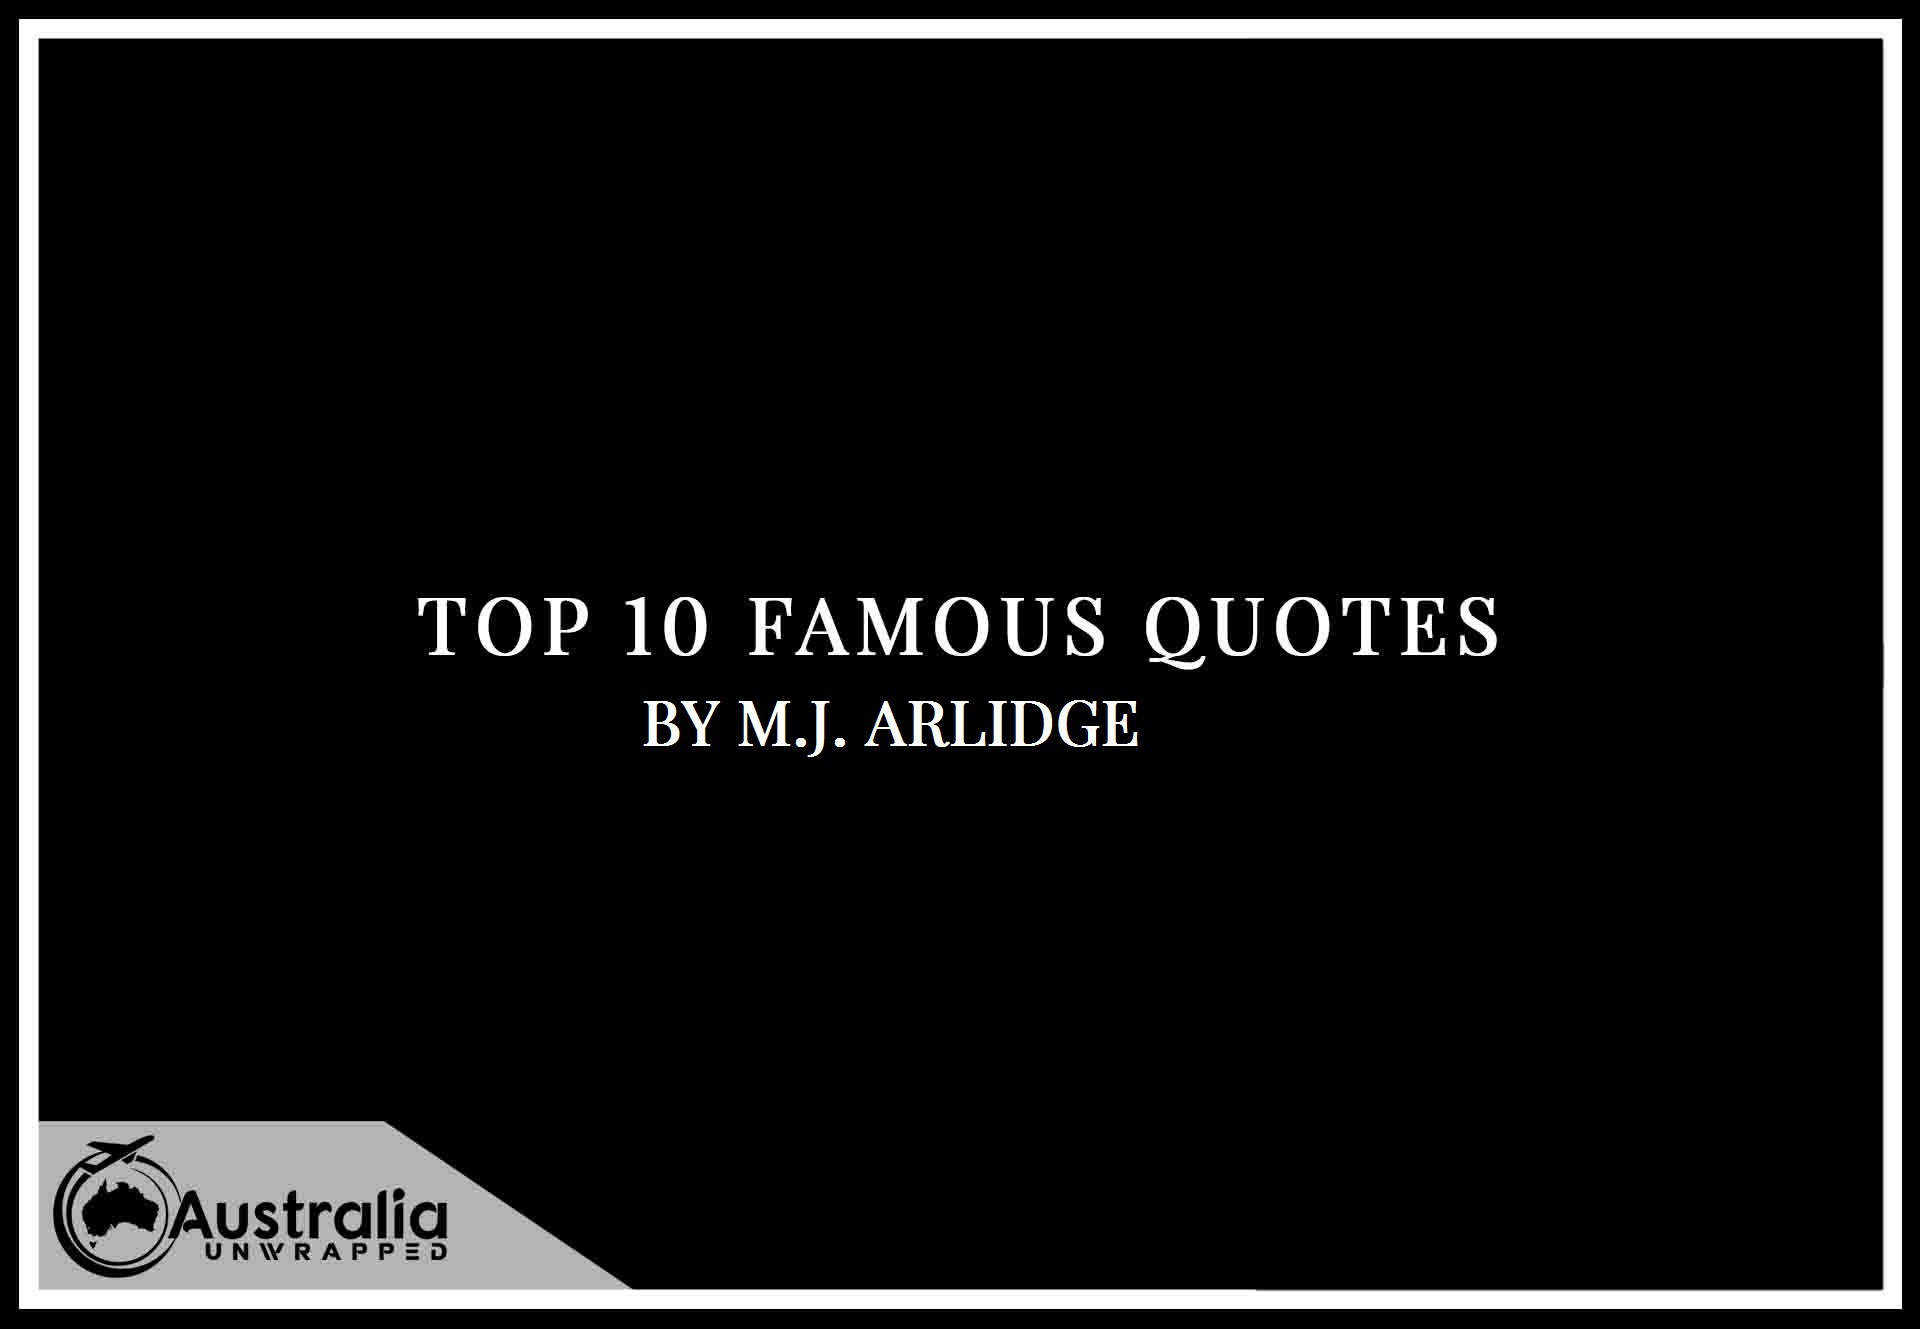 M.J. Arlidge's Top 10 Popular and Famous Quotes